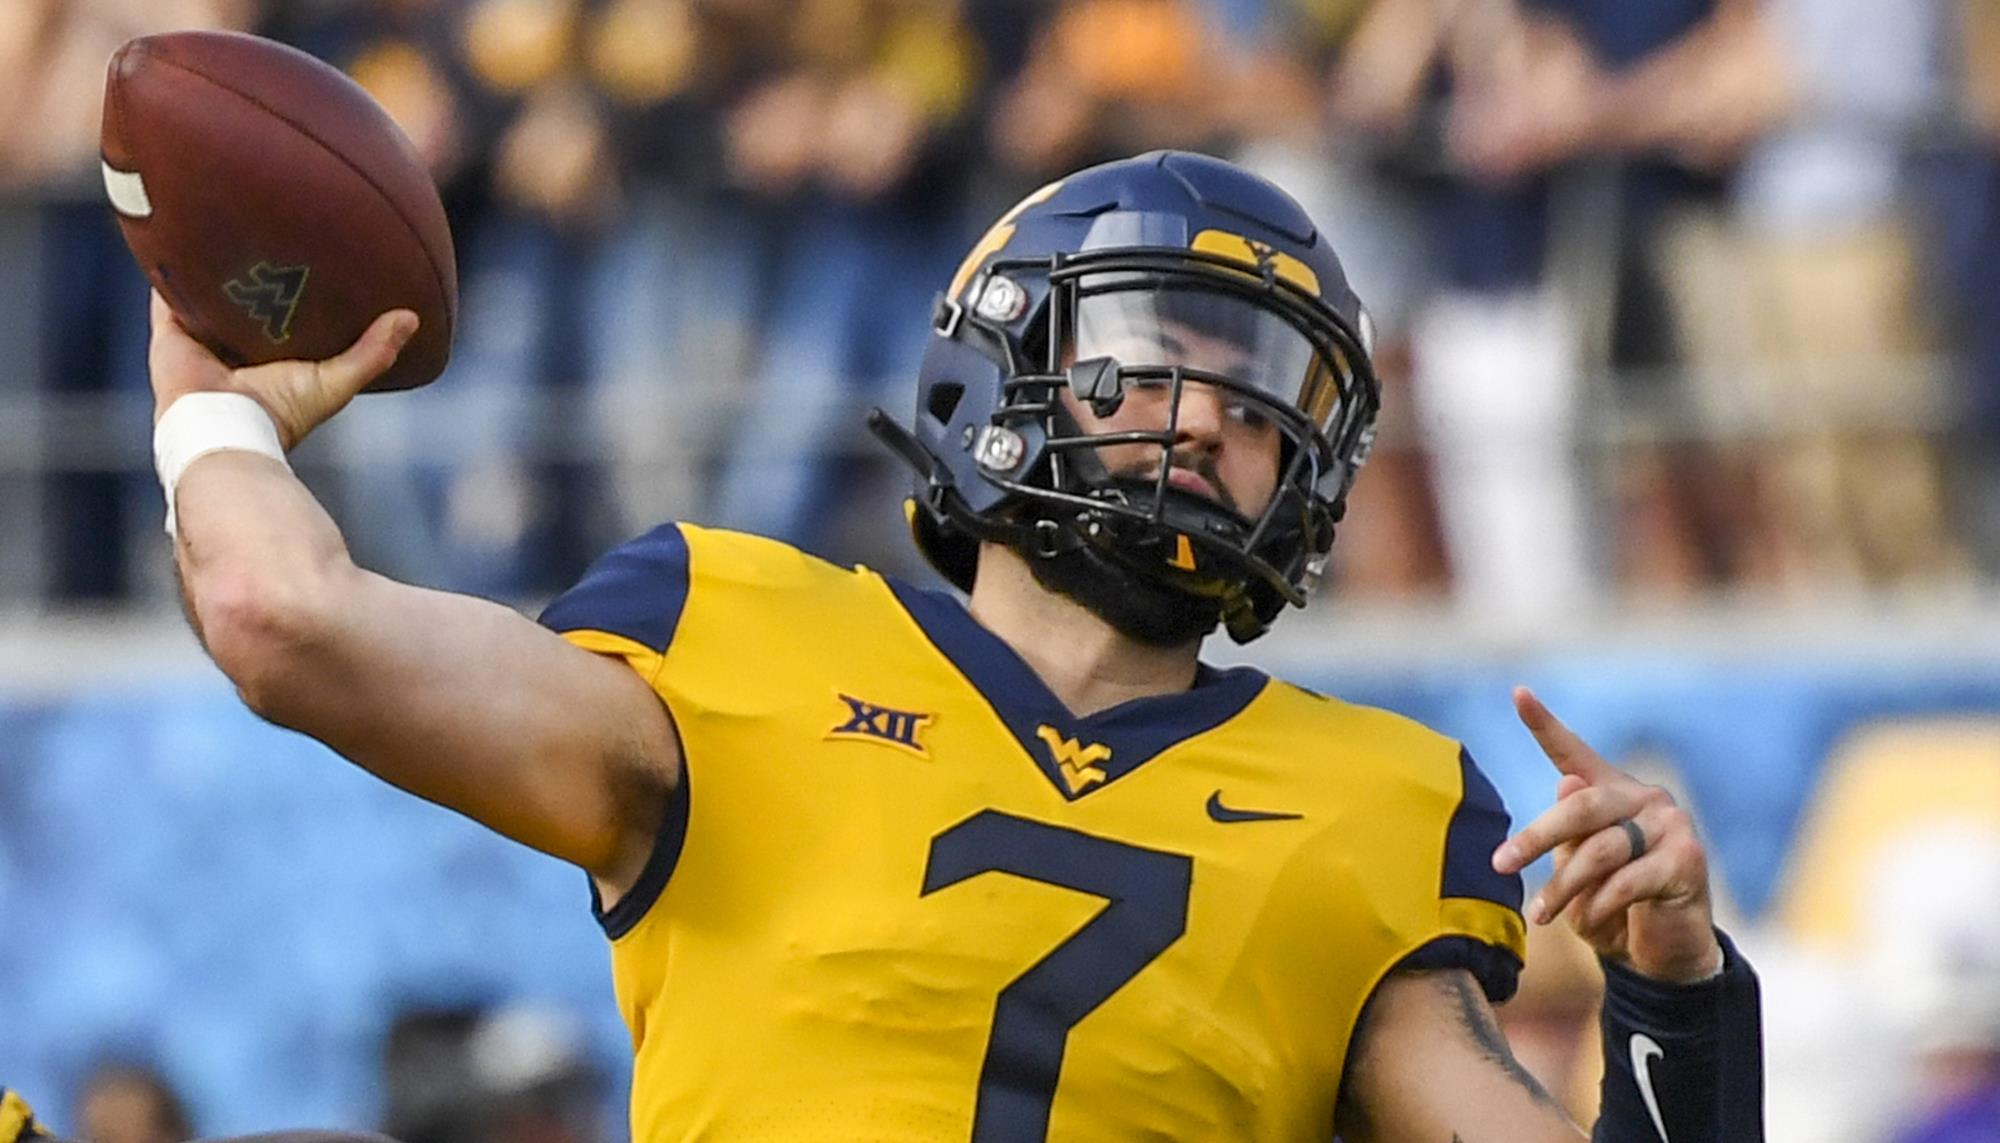 buy online 8f474 9cfc7 Grier to Focus on NFL Draft Preparation - West Virginia ...